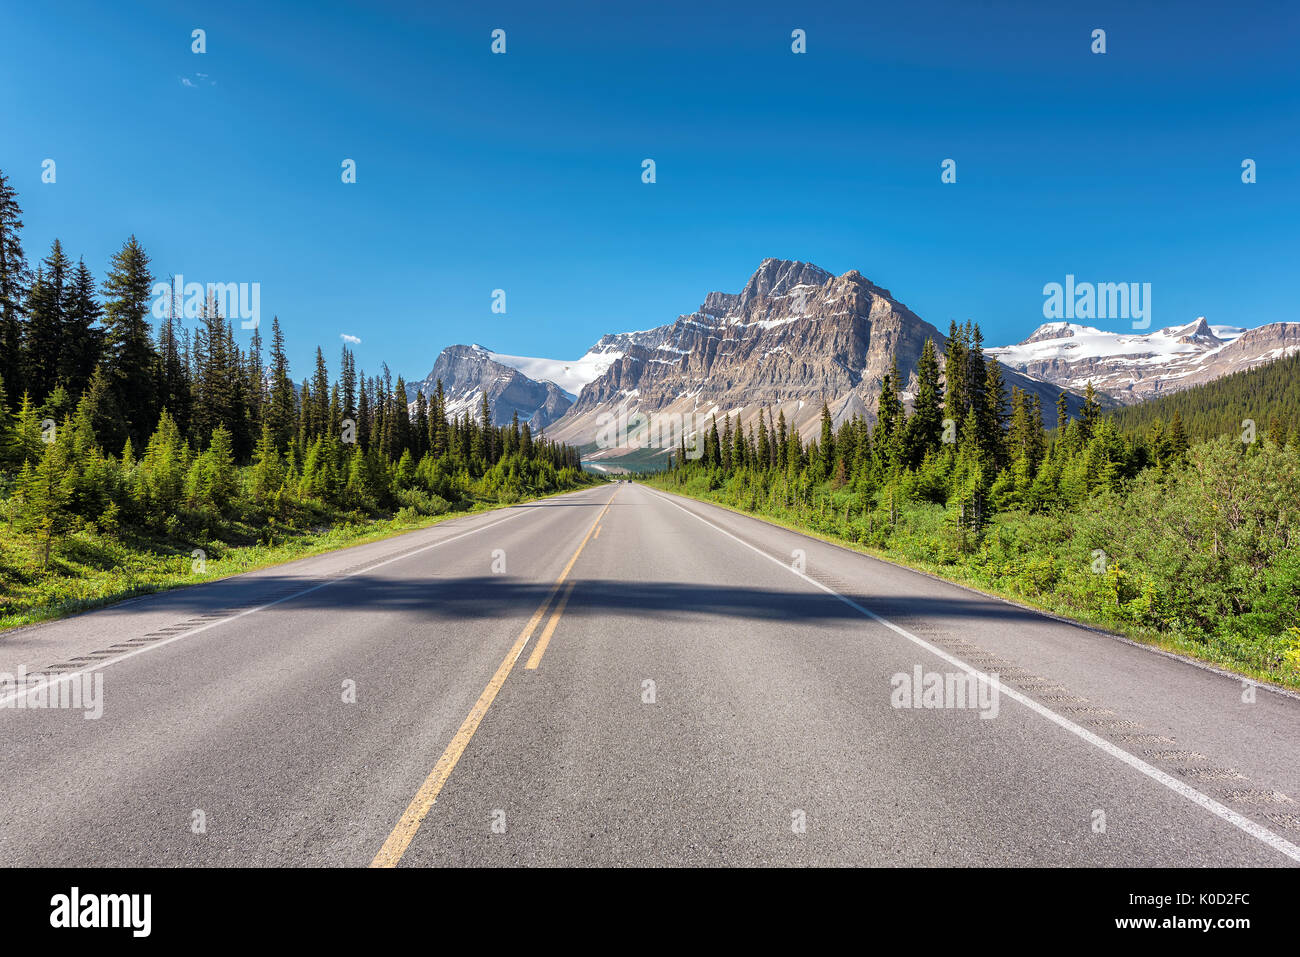 Beautiful Highway through Canadian Rockies in Banff National Park - Stock Image